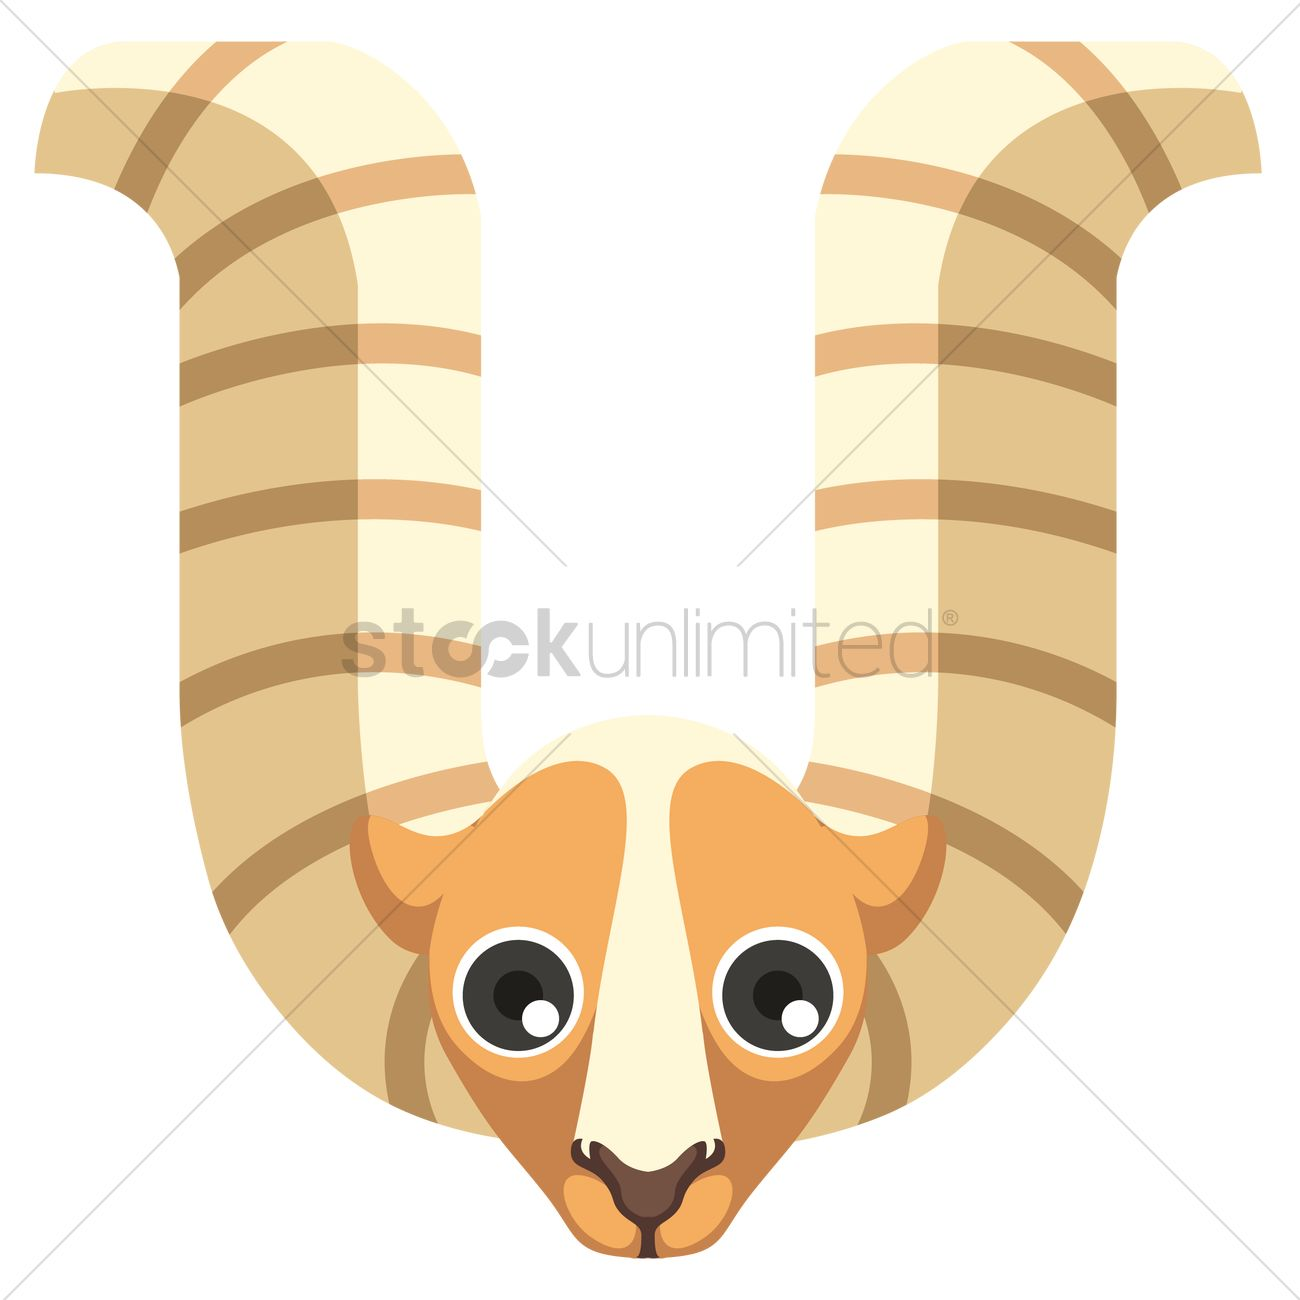 Letter u for urial Vector Image - 1236520 | StockUnlimited